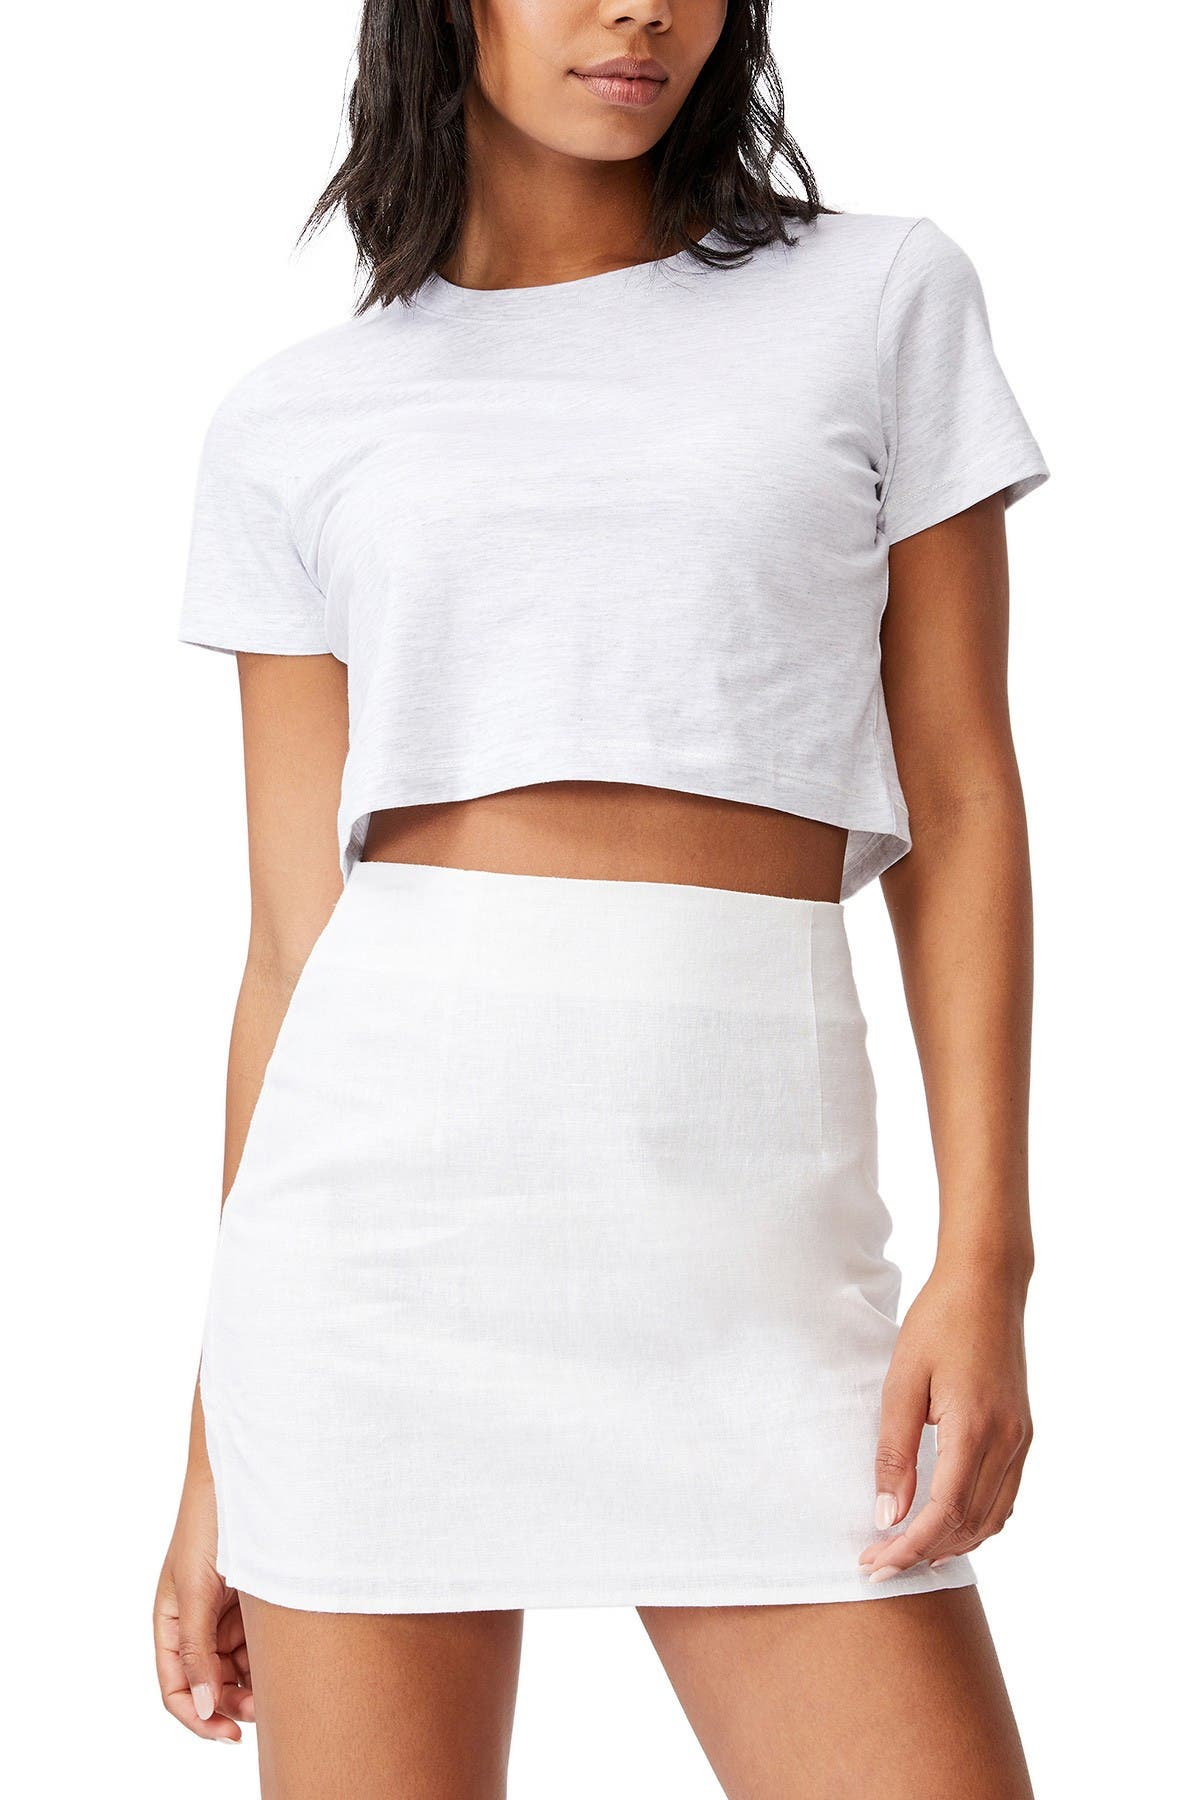 Cotton On ULTIMATE A-LINE MINI SKIRT